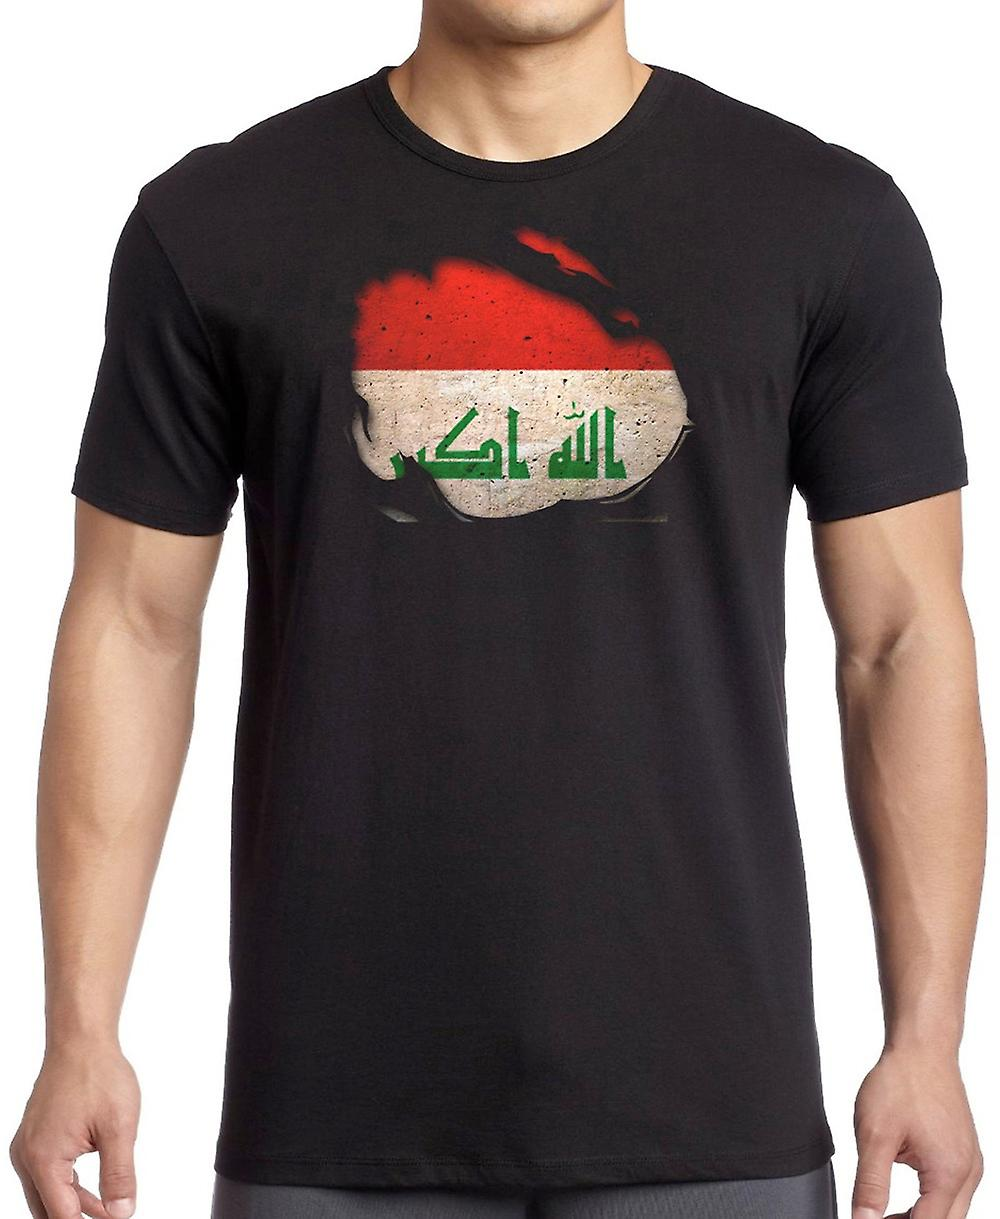 Iraqi Iraq Ripped Effect Under Shirt Women T Shirt